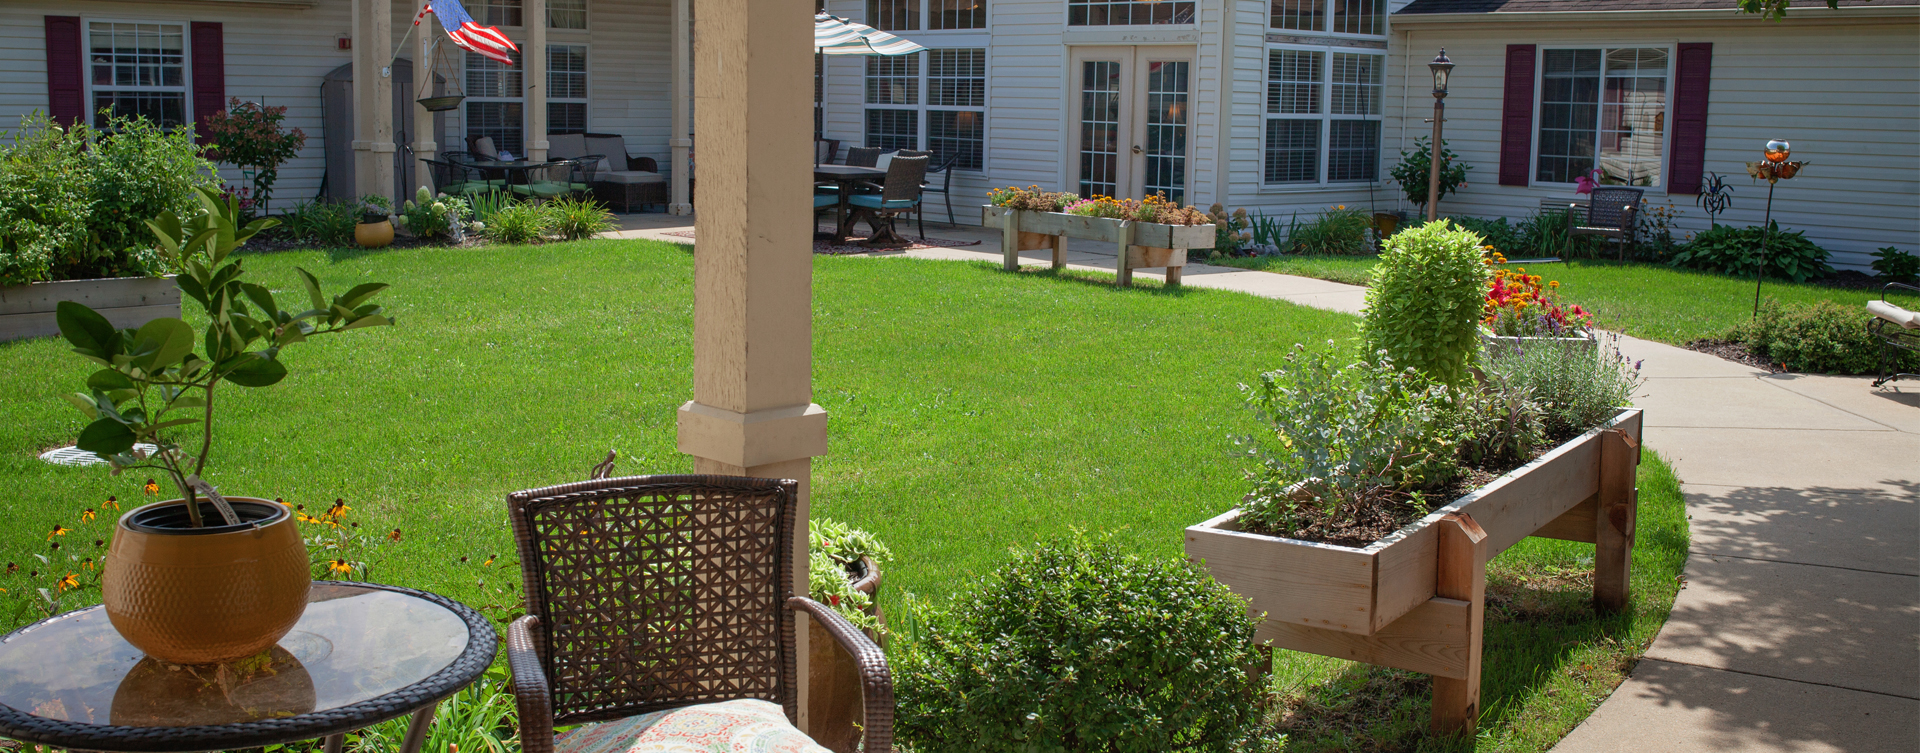 Enjoy bird watching, gardening and barbecuing in our courtyard at Bickford of Marion